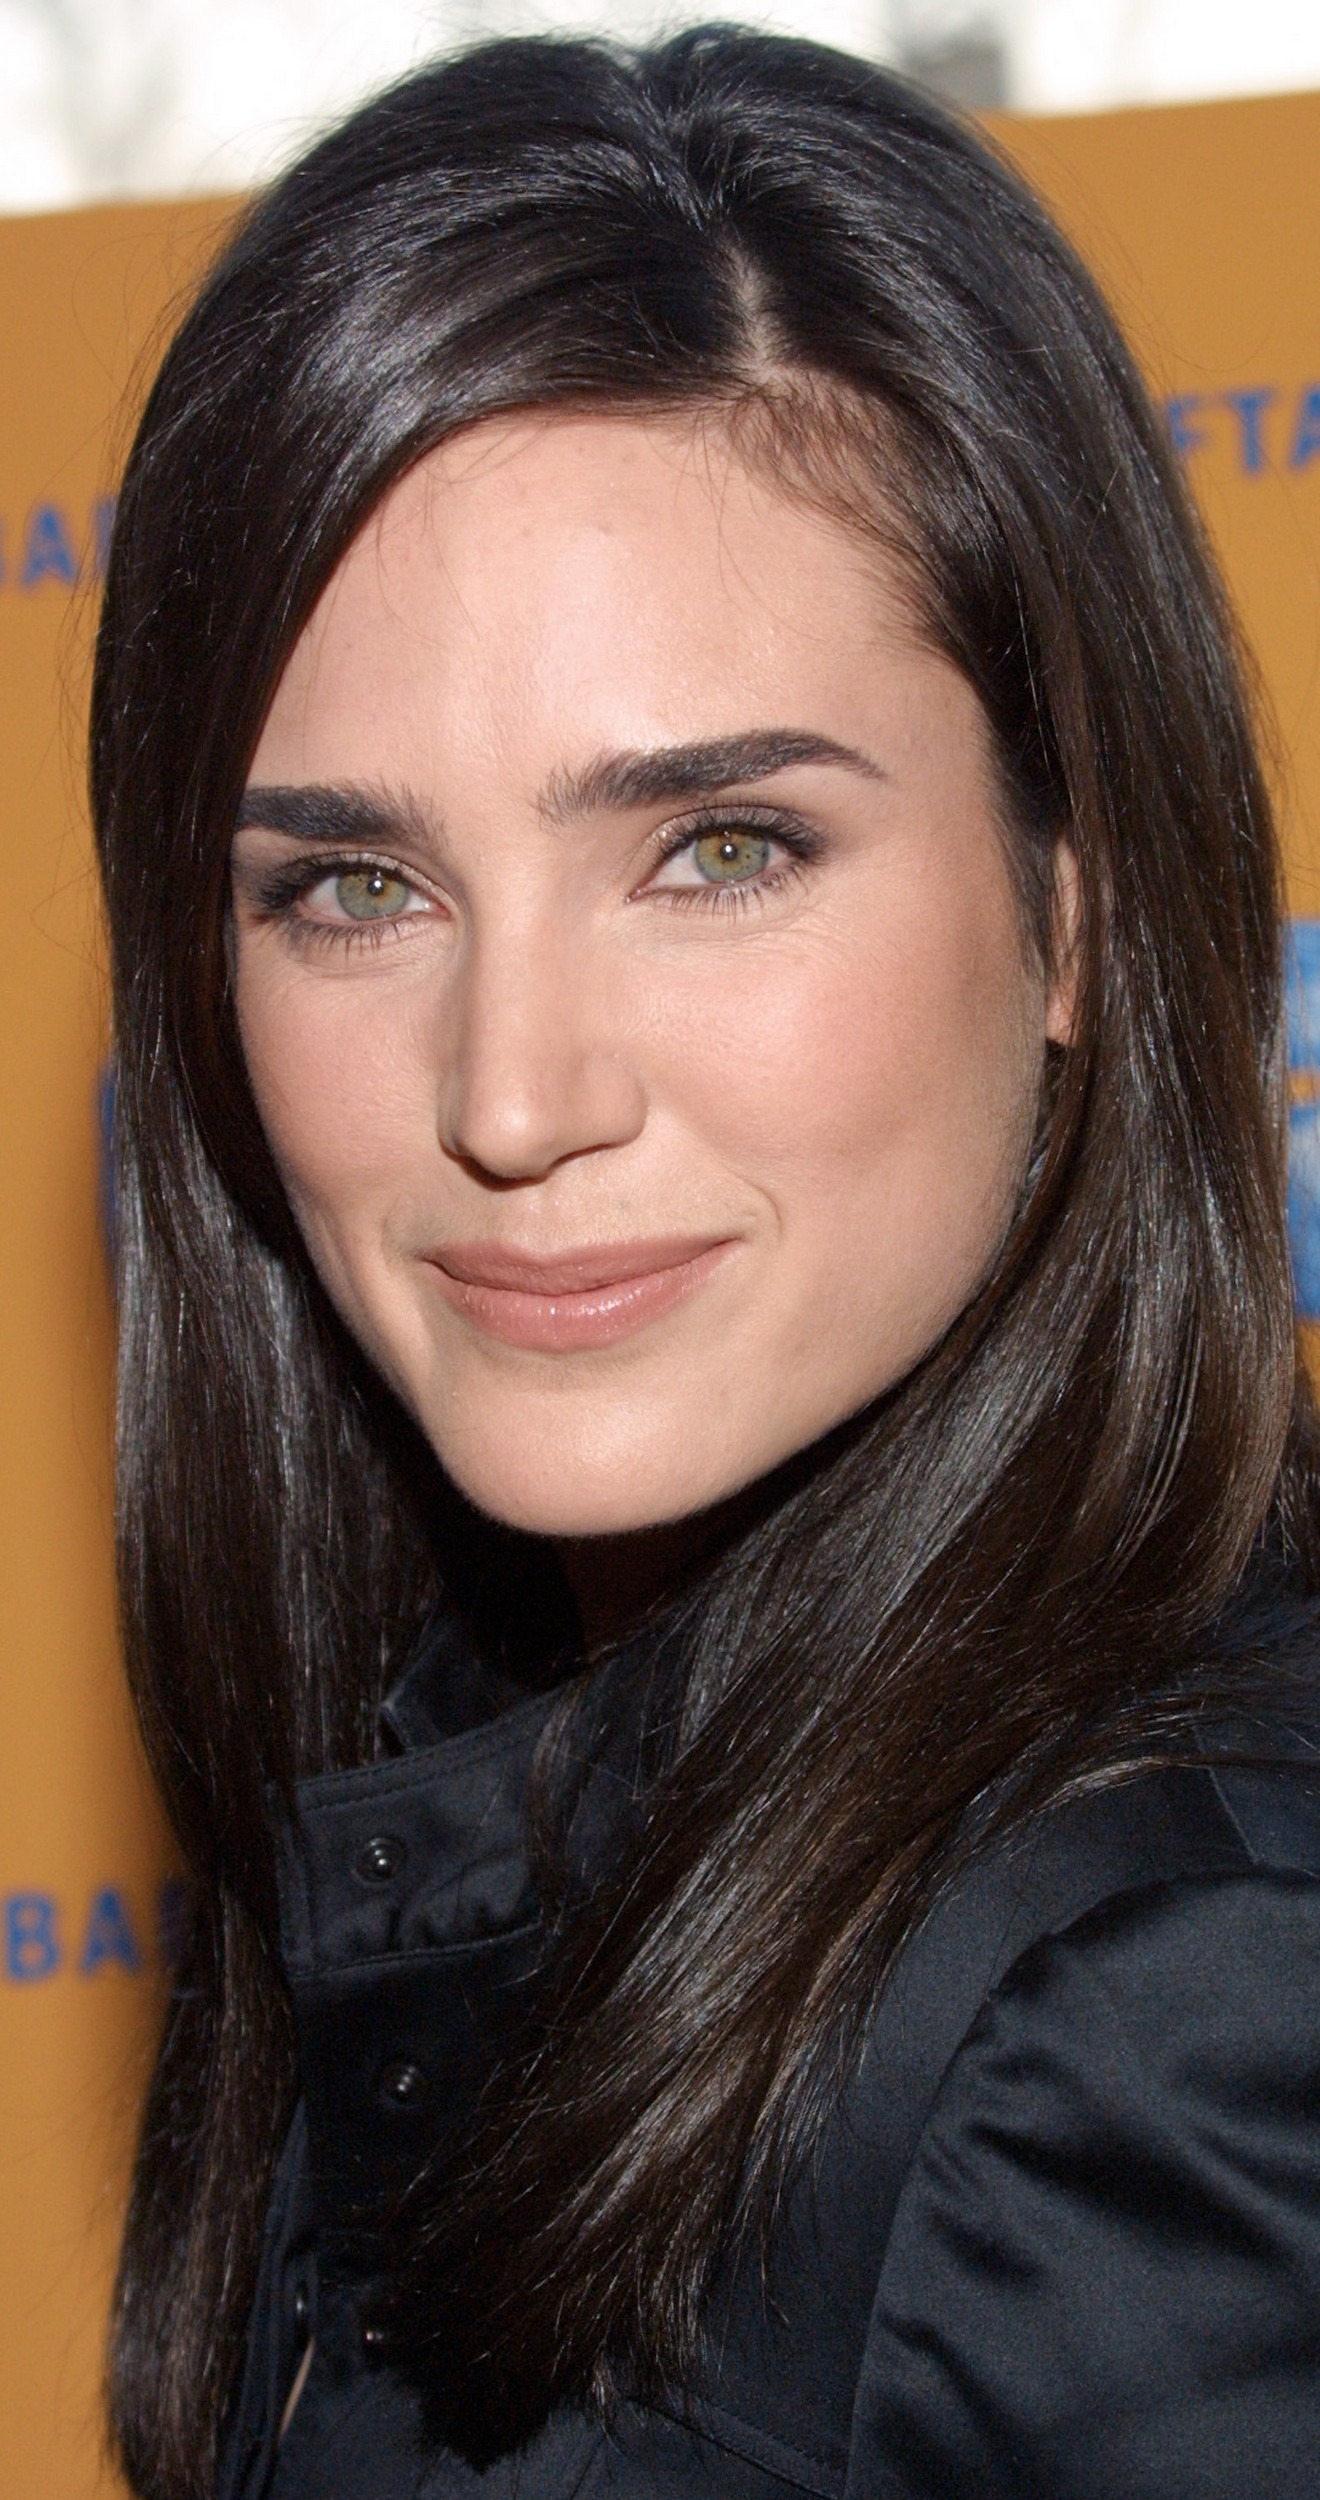 jennifer connelly - photo #16